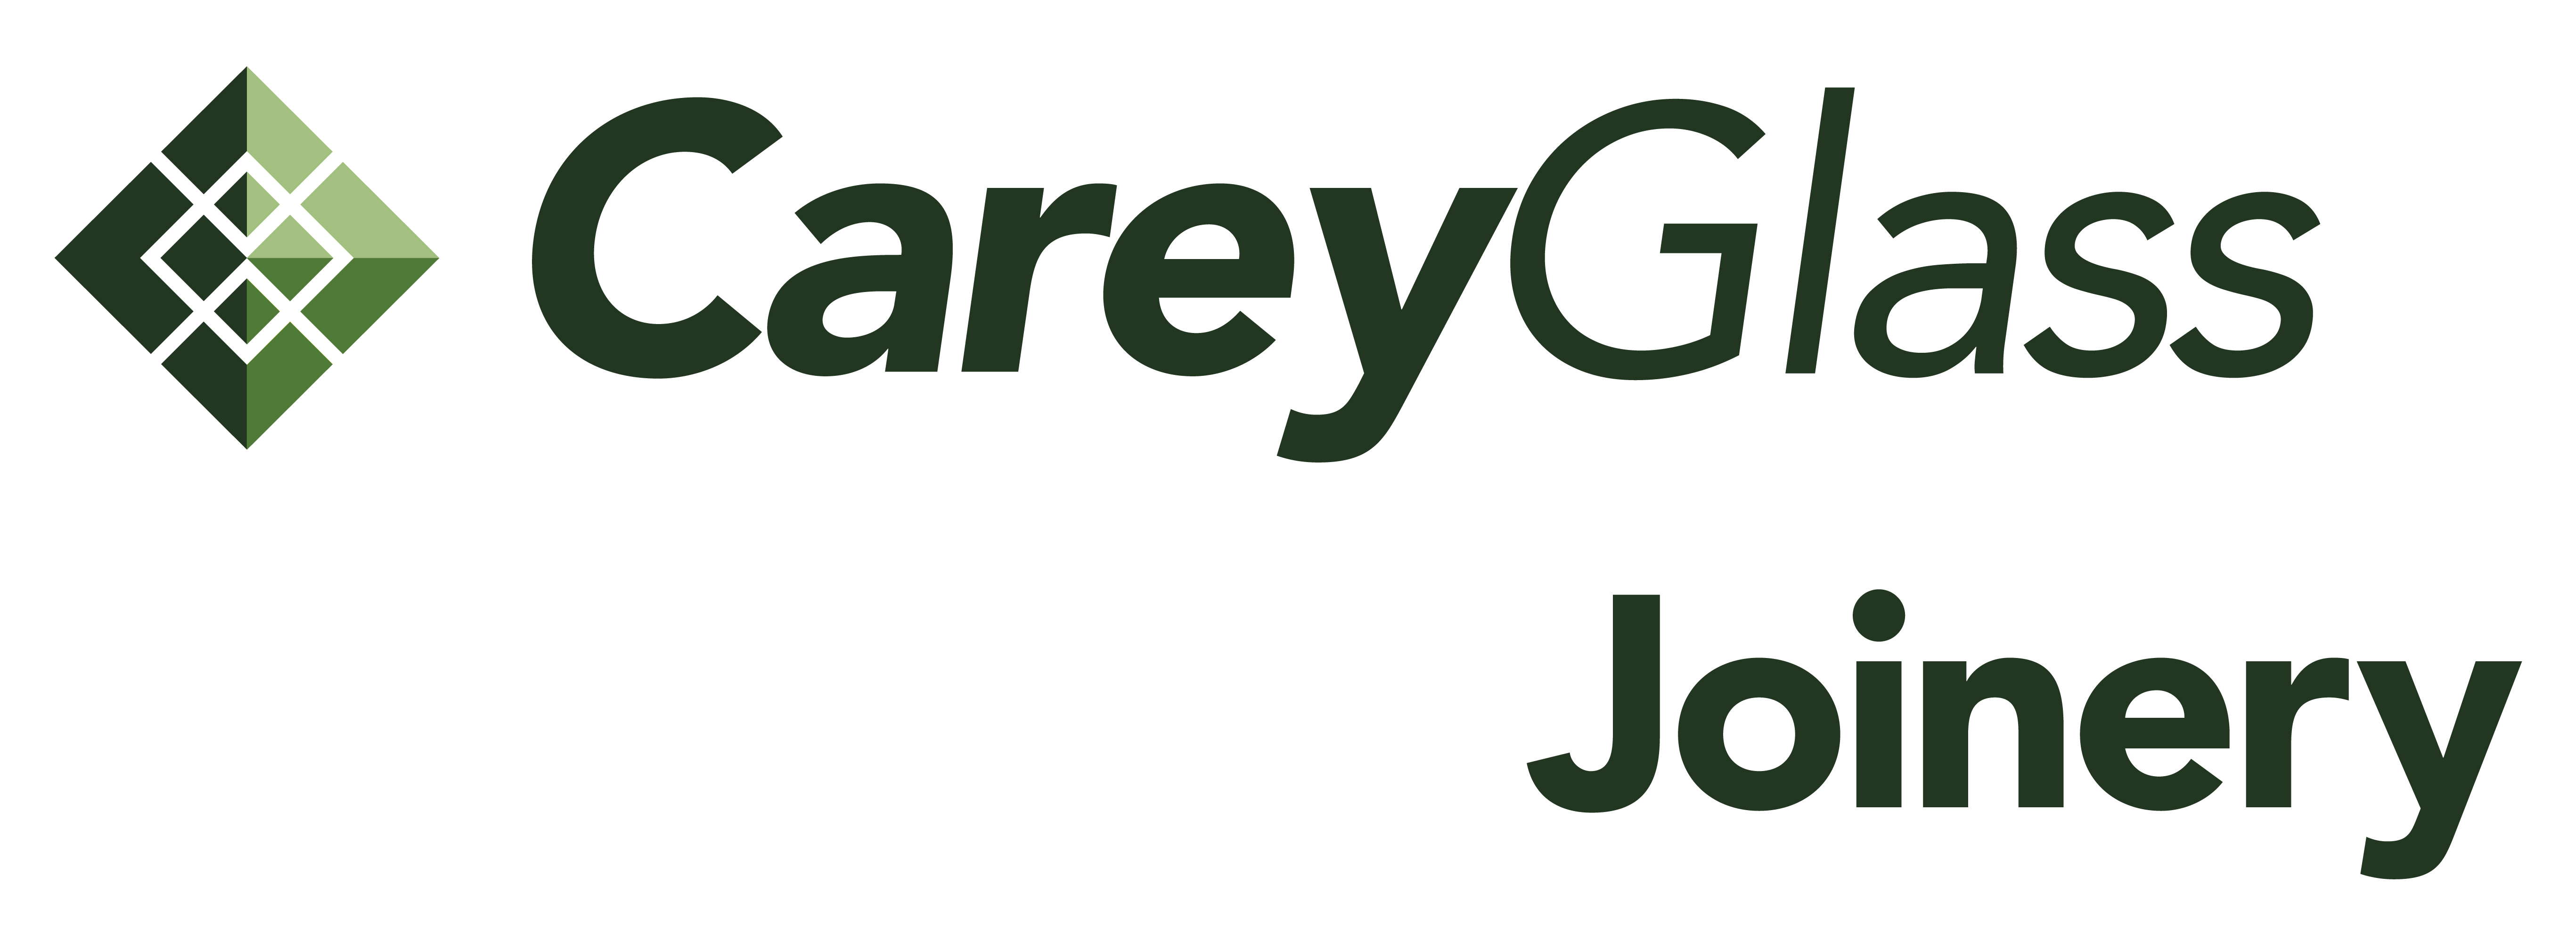 Carey Glass Joinery logo